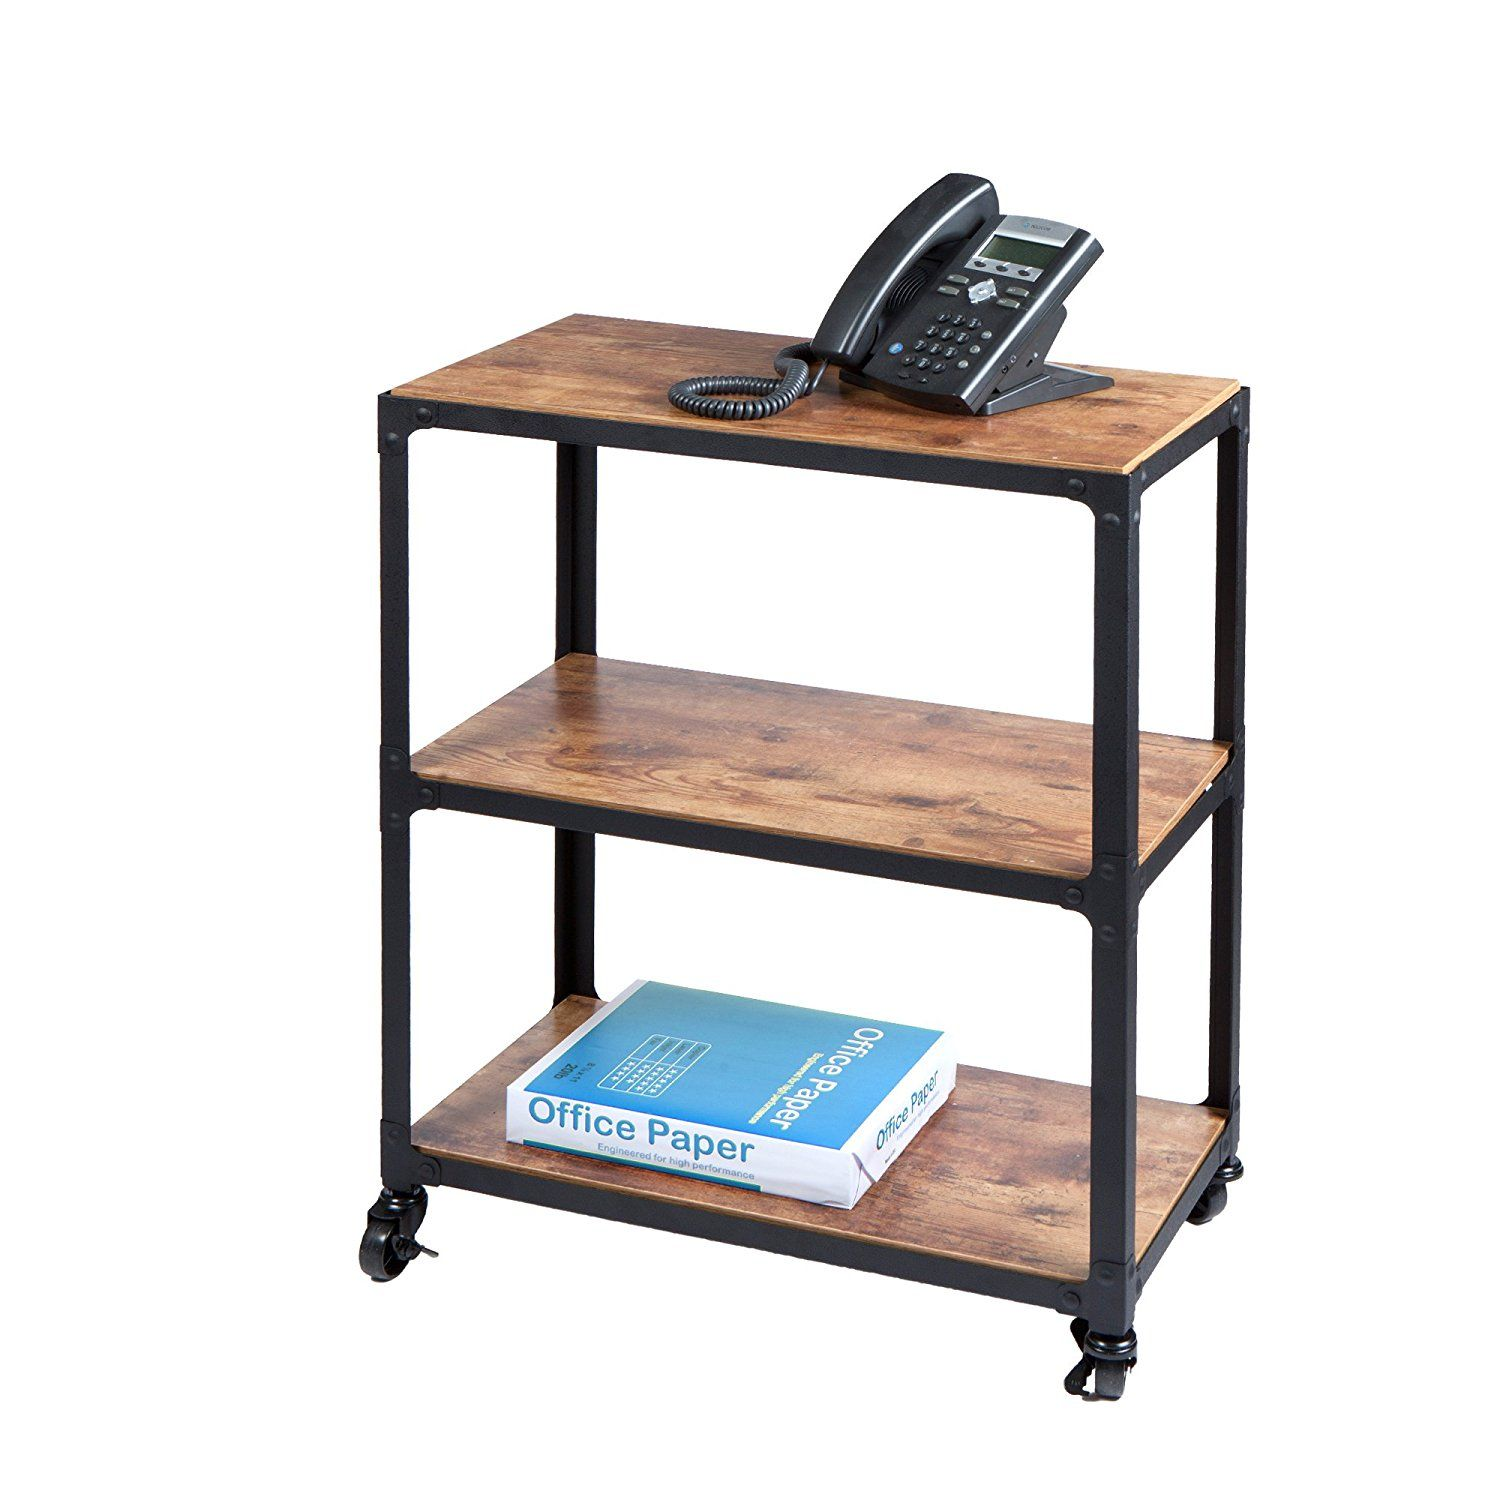 Craft Storage Cart Perfect For Your Cricut Craft Storage Cart Utility Cart Craft Storage